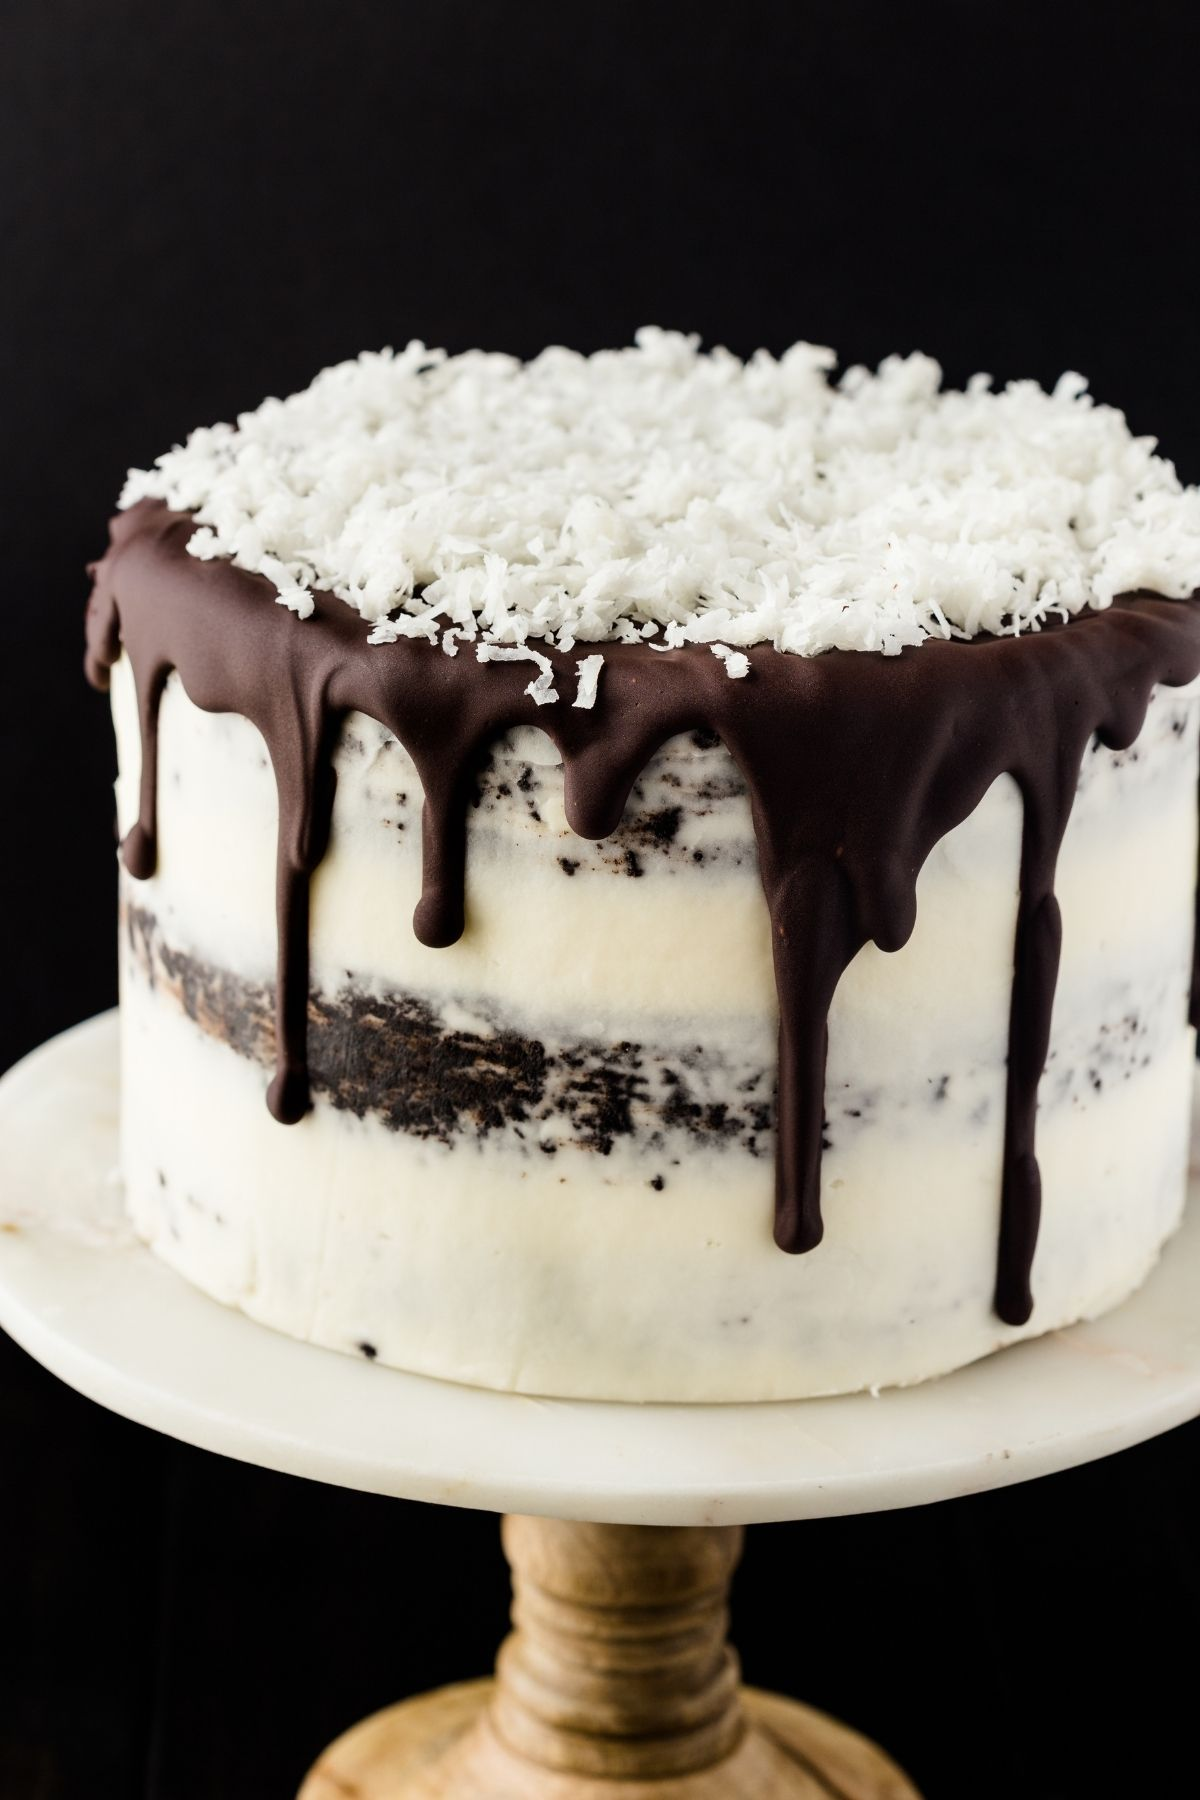 Chocolate coconut cake with dripping ganache and coconut flakes on top sitting on a cake stand.